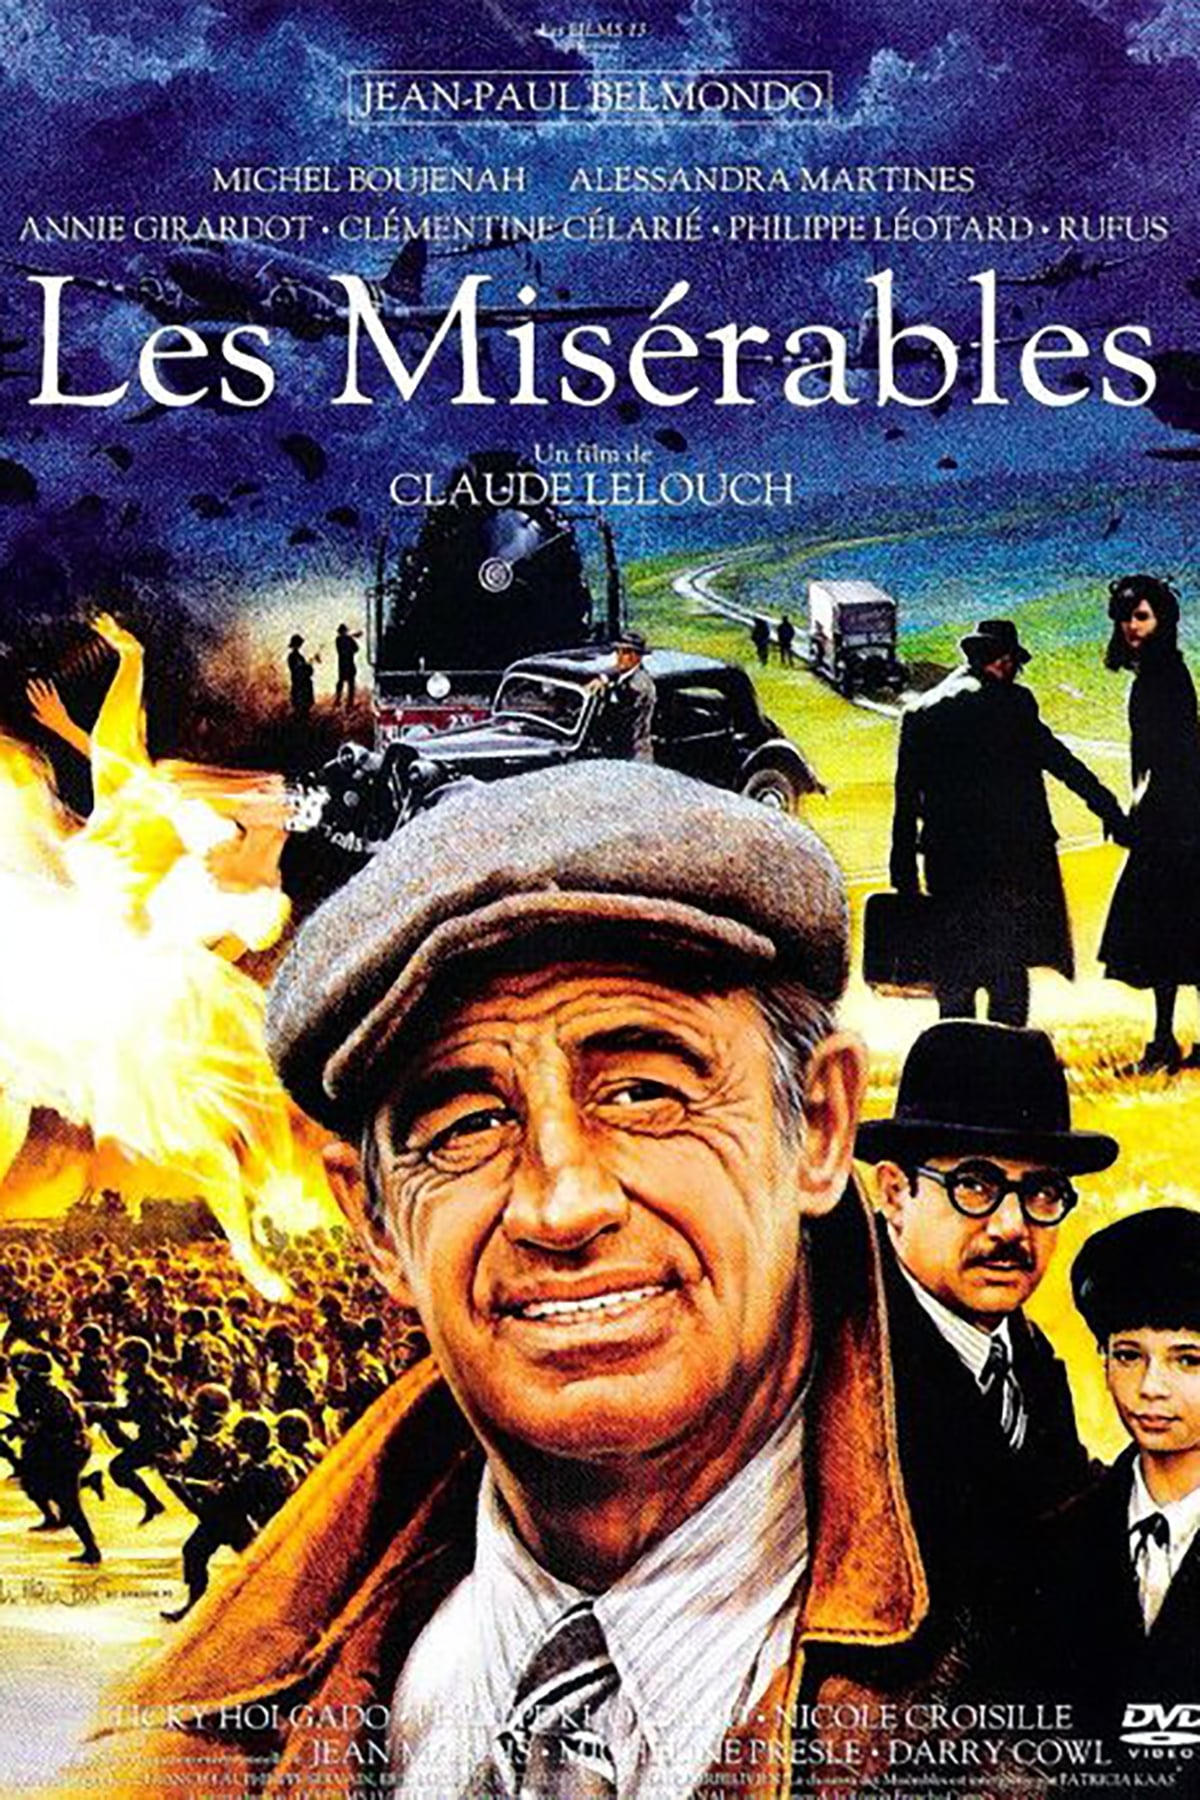 Les Miserables (1995)